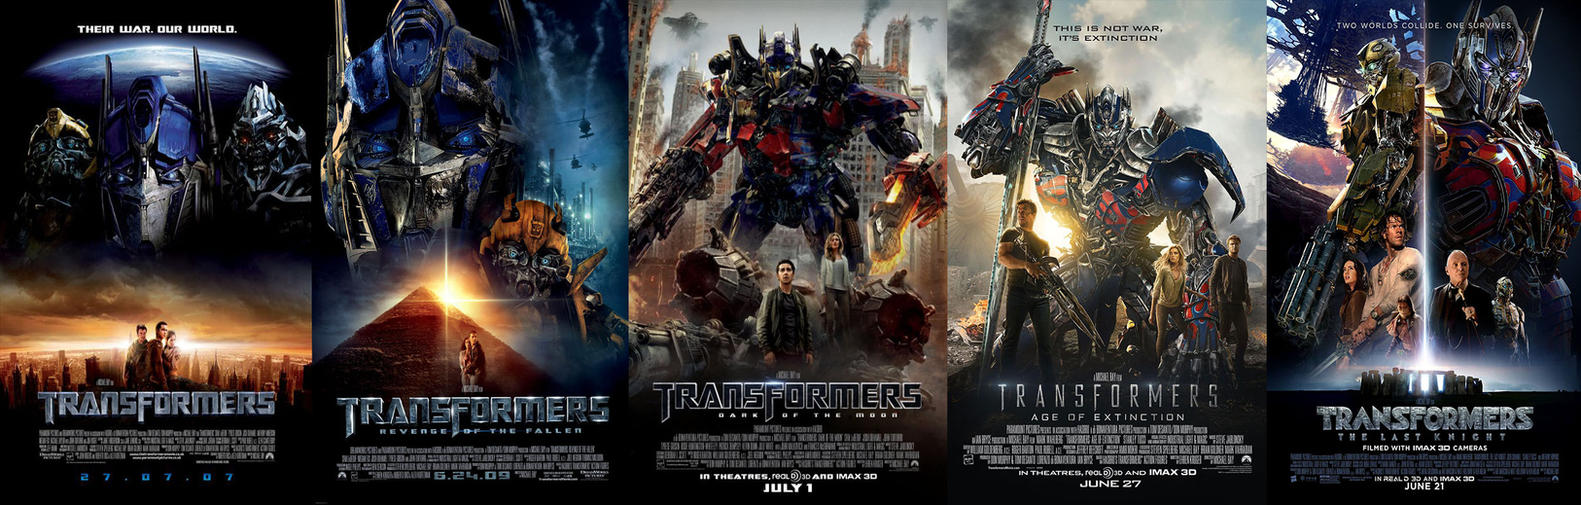 transformers 1-5 cinematic universe postersthe-dark-mamba-995 on